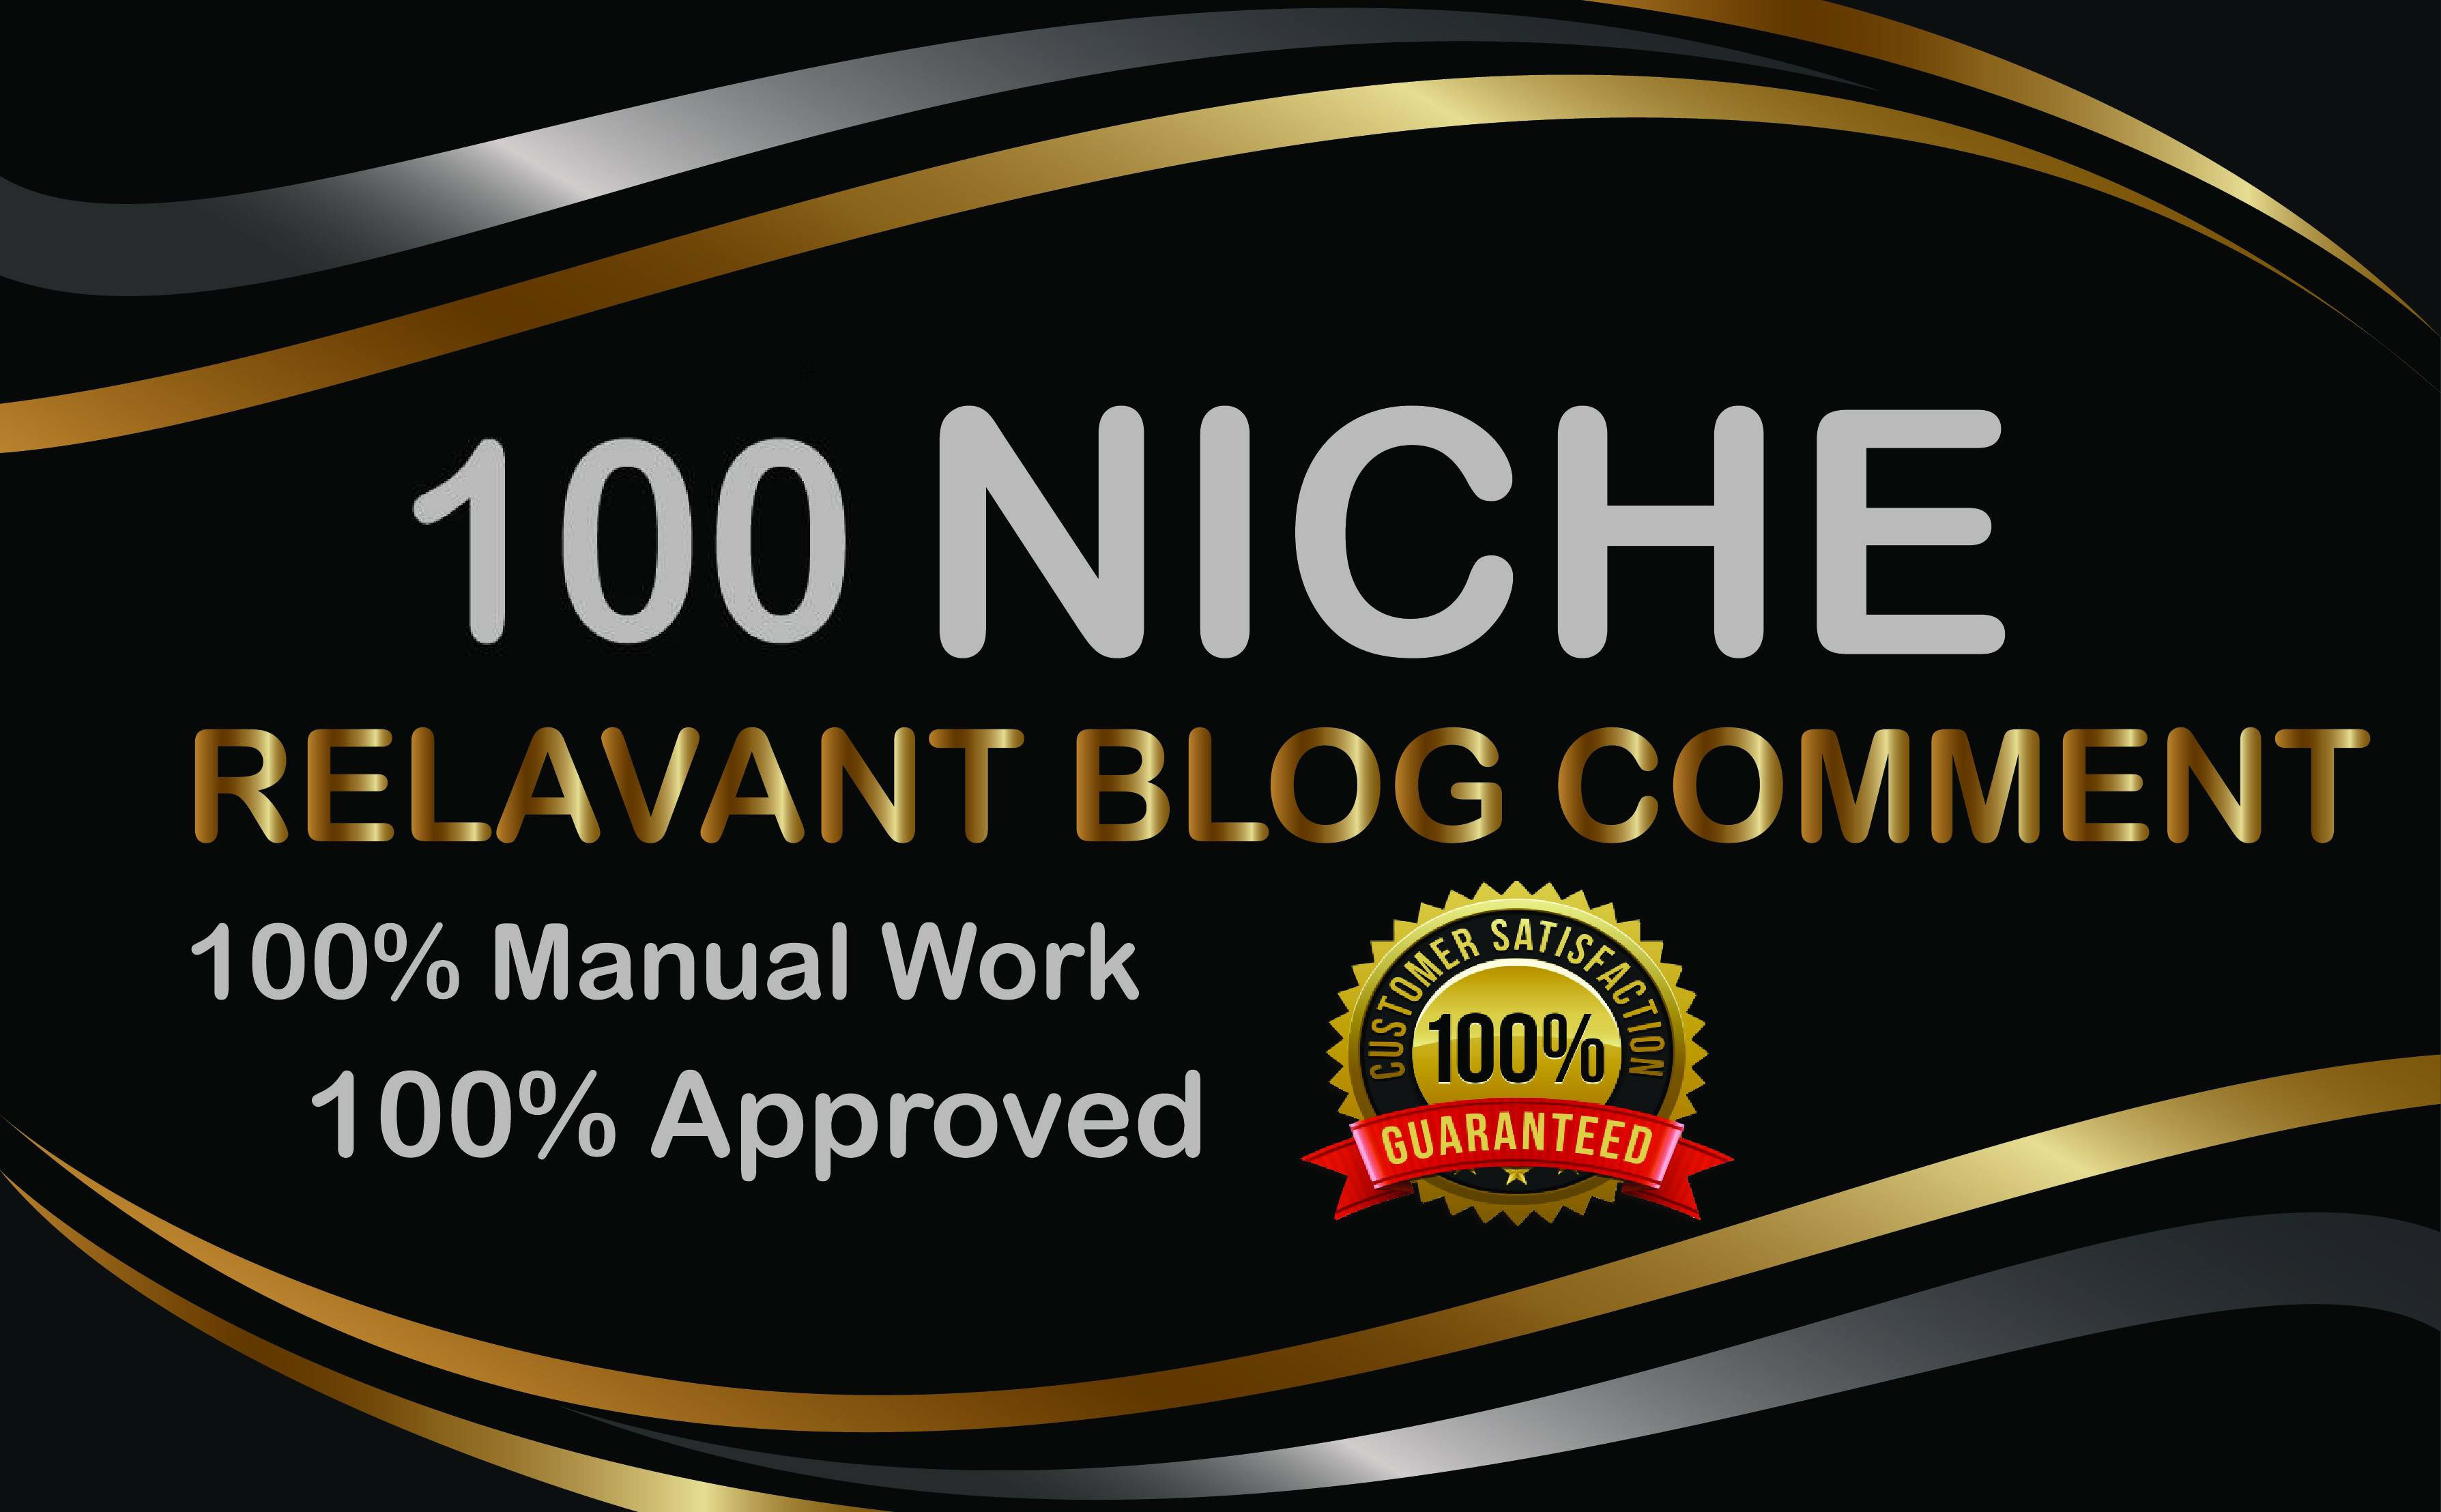 i will provide 100 niche relevant blog comment with best service